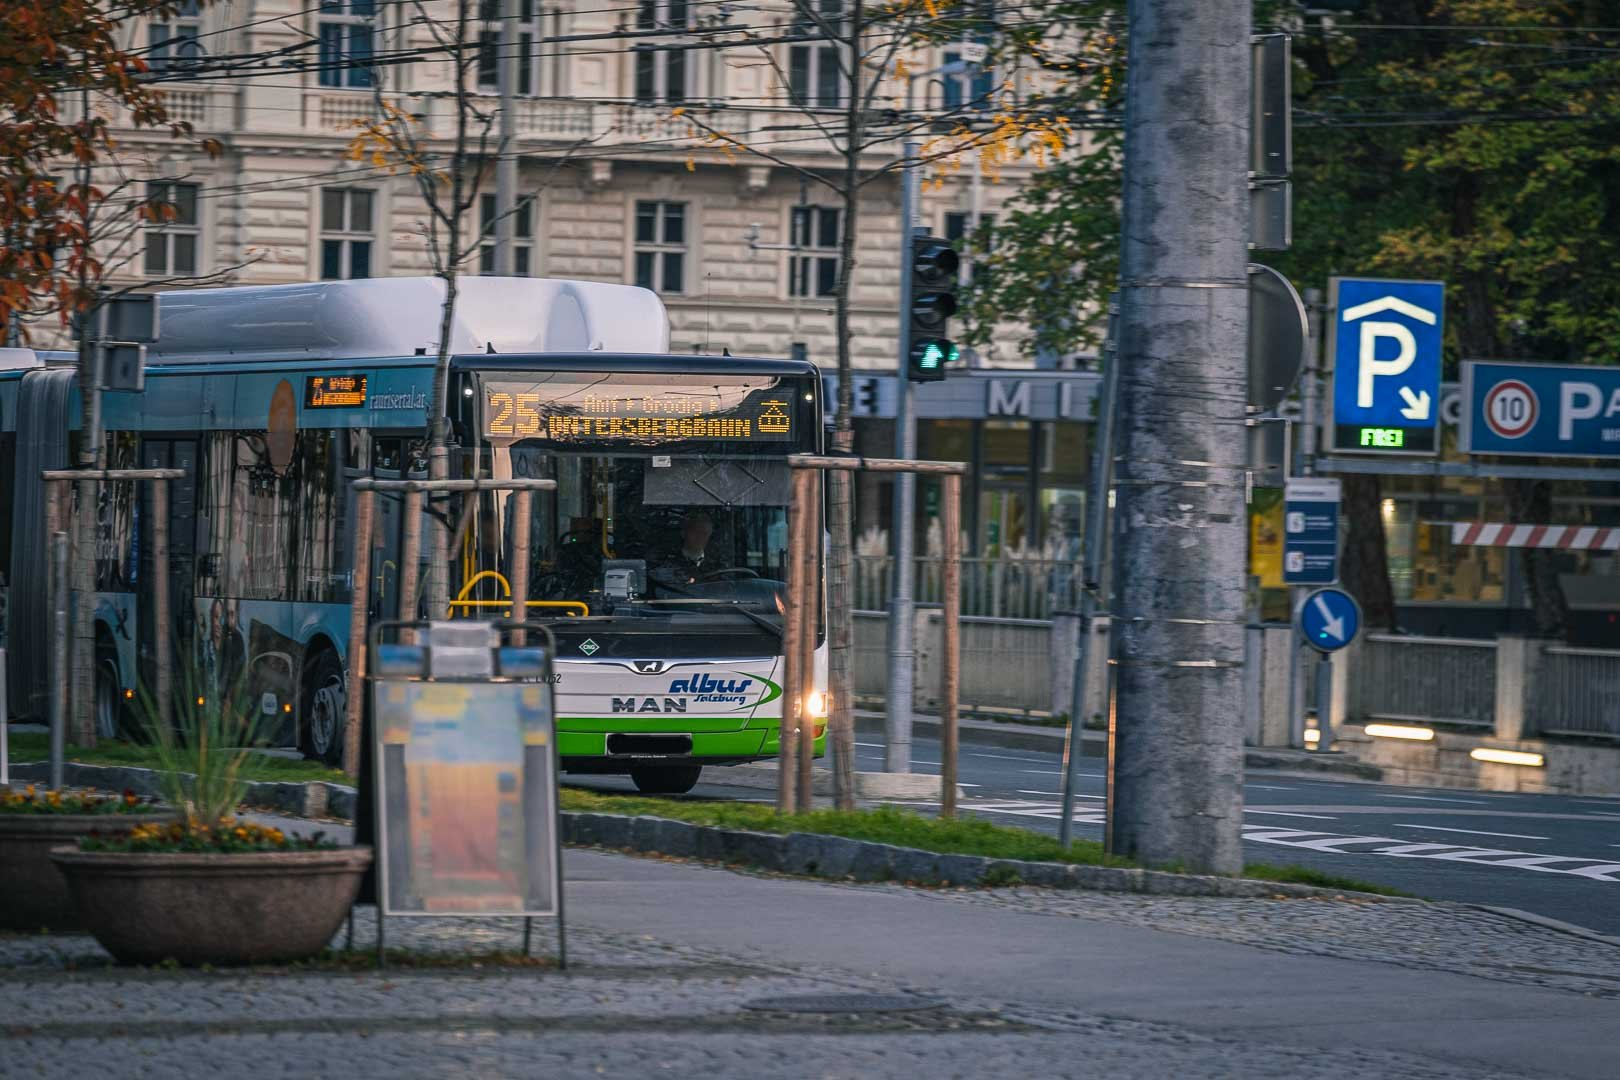 bus number 25 to Untersberg cable car starting at Mirabell square